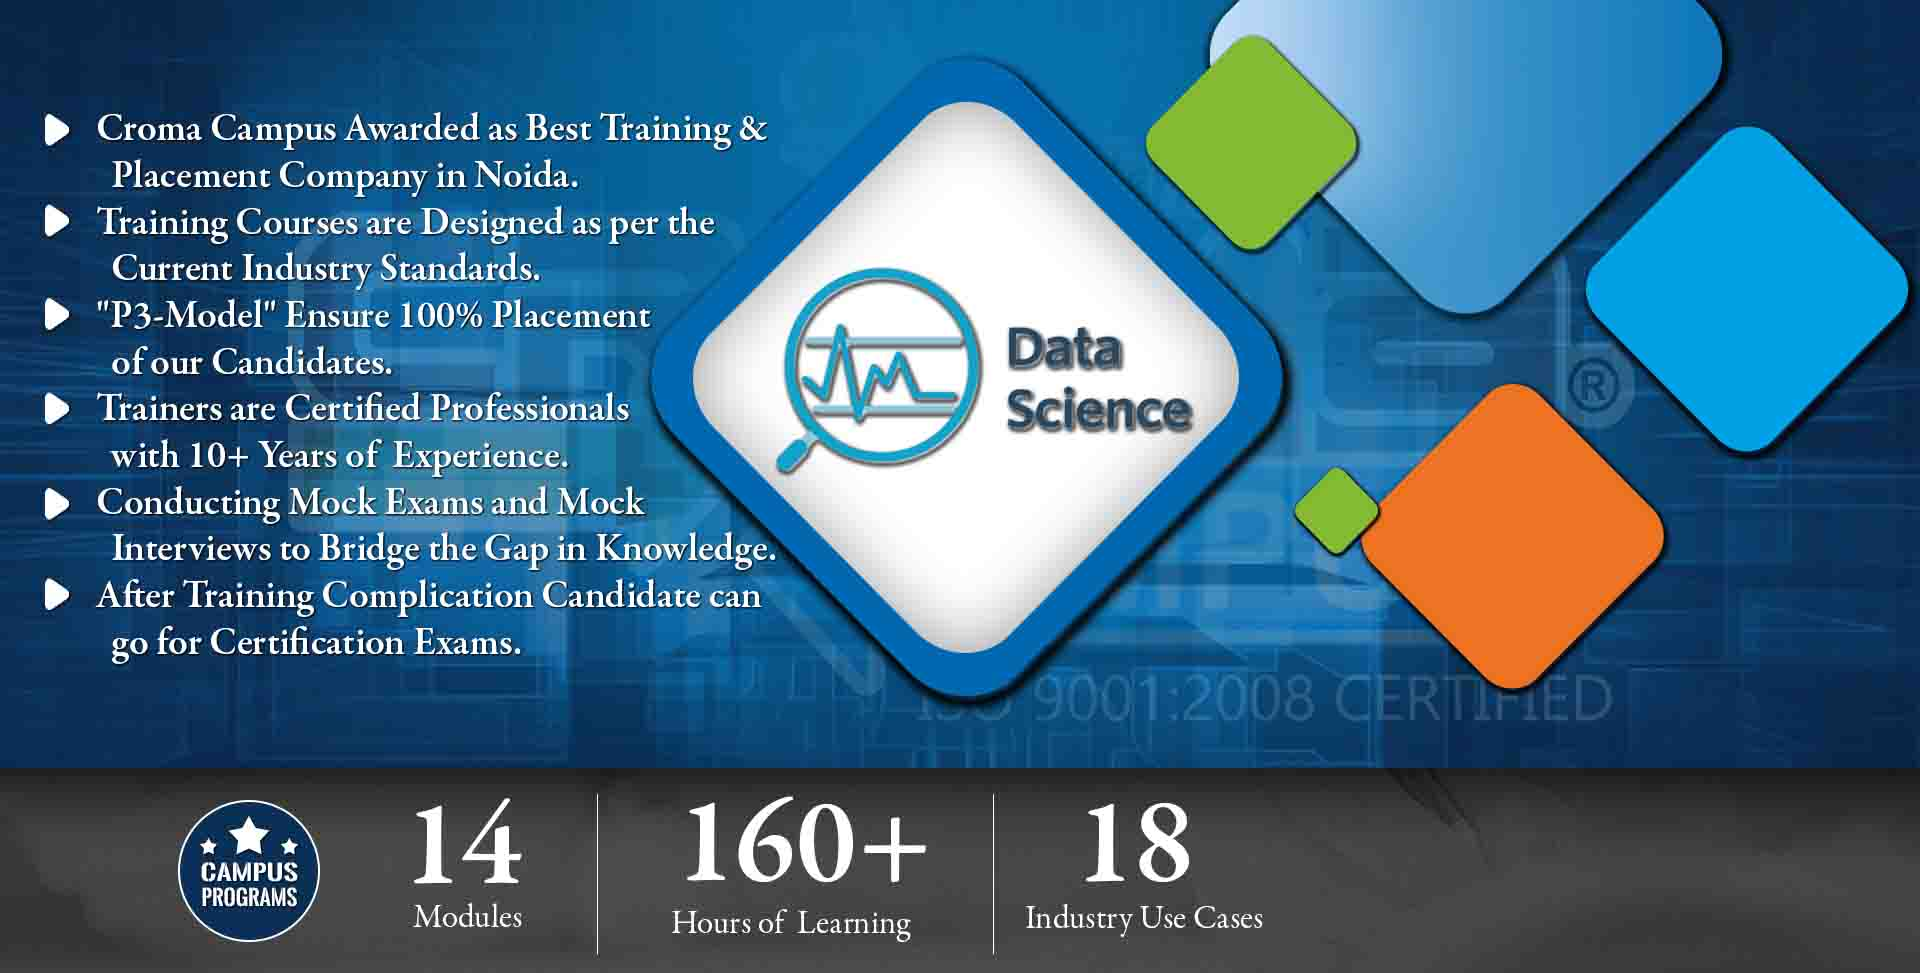 Data Science Training in Delhi- Croma Campus